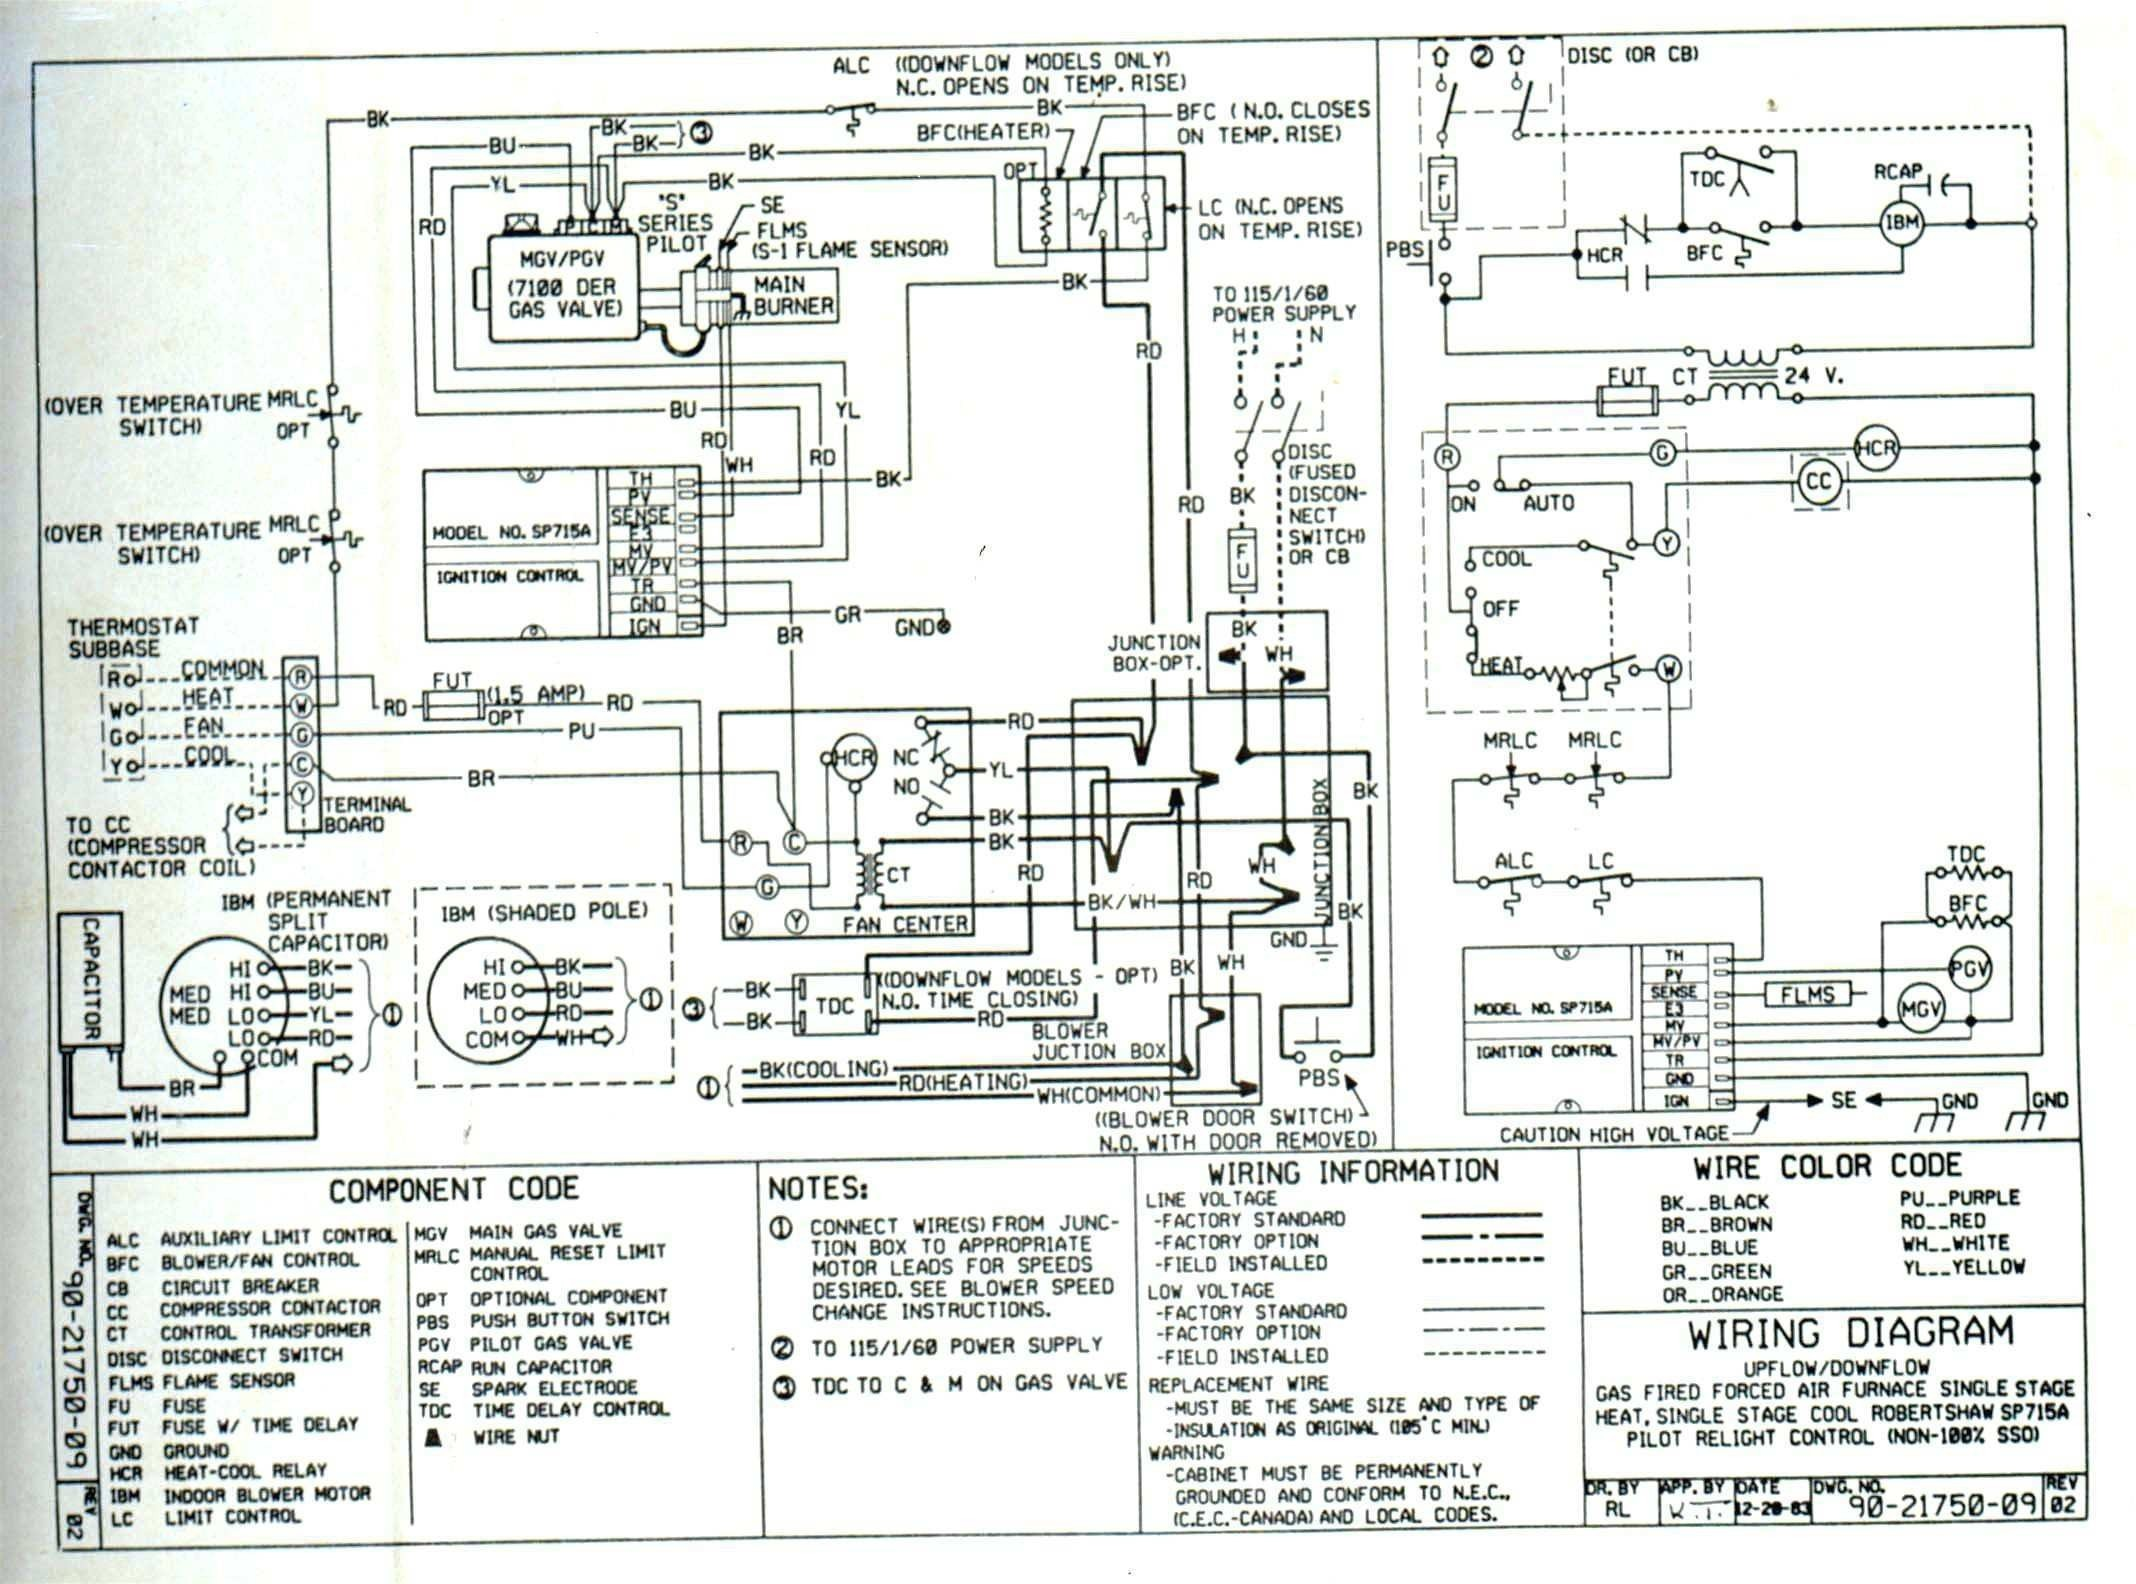 2 Pole Contactor Wiring Diagram Iec Wiring Diagram Example Fresh Wiring  Diagram Contactor & 2 Pole